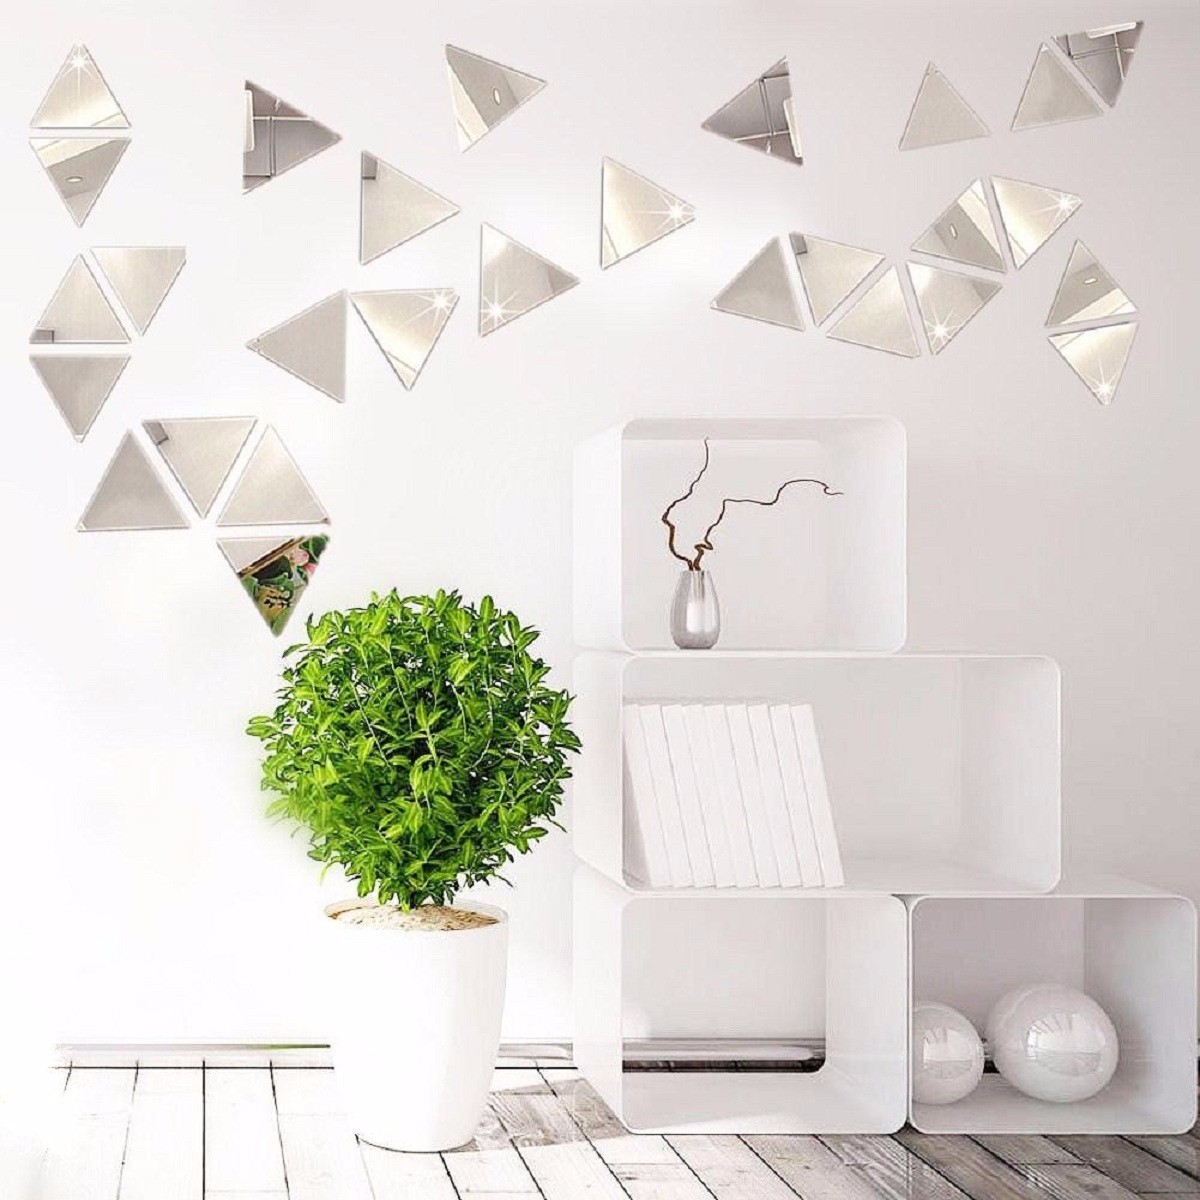 Déco Murale Diy 16pcs Diy Miroir Sticker Autocollant Mural Triangle Moderne Salon